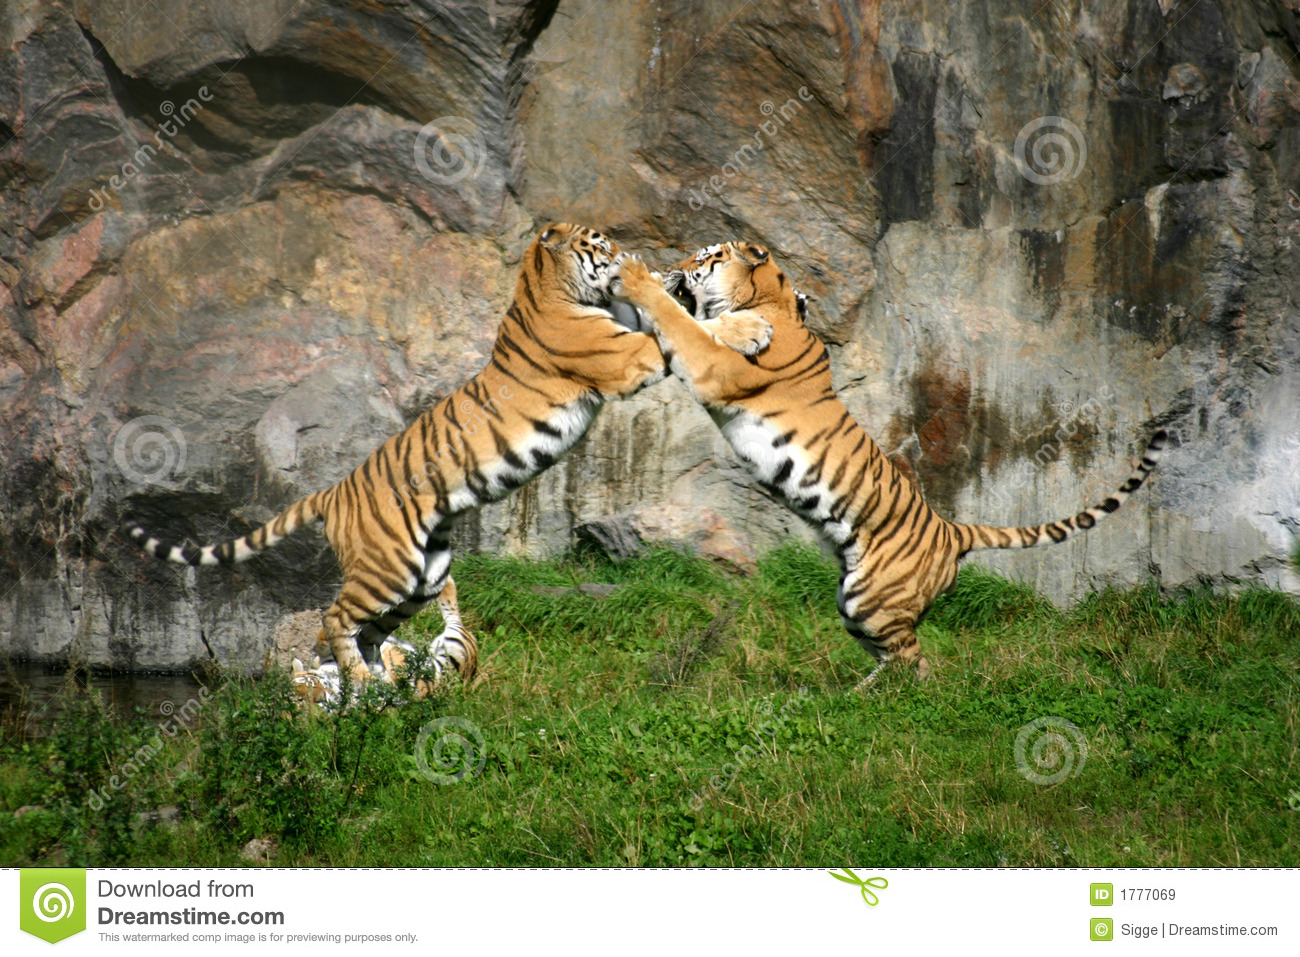 Two adult tigers in a vicious playfight with a rocky backdrop.